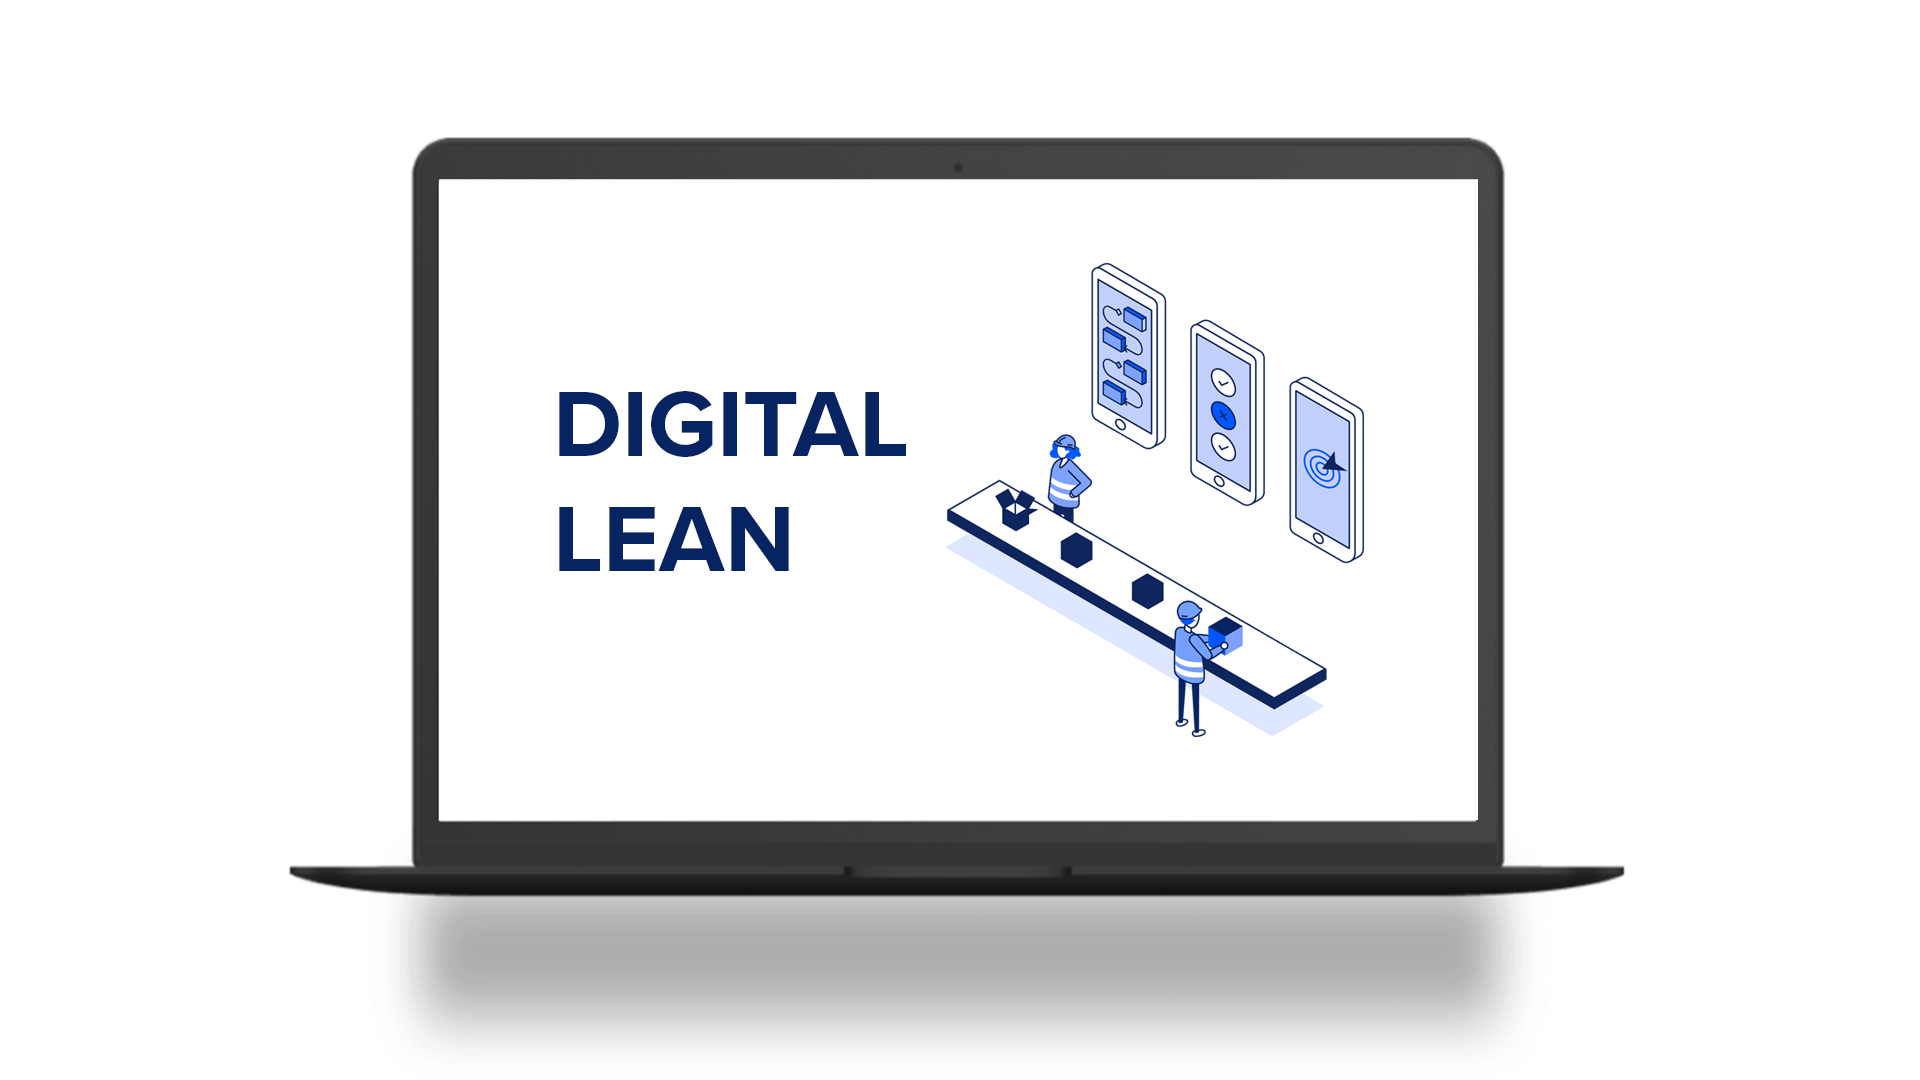 Definitive guide  to digital lean manufacturing: how to extend lean manufacturing tools with digital technologies